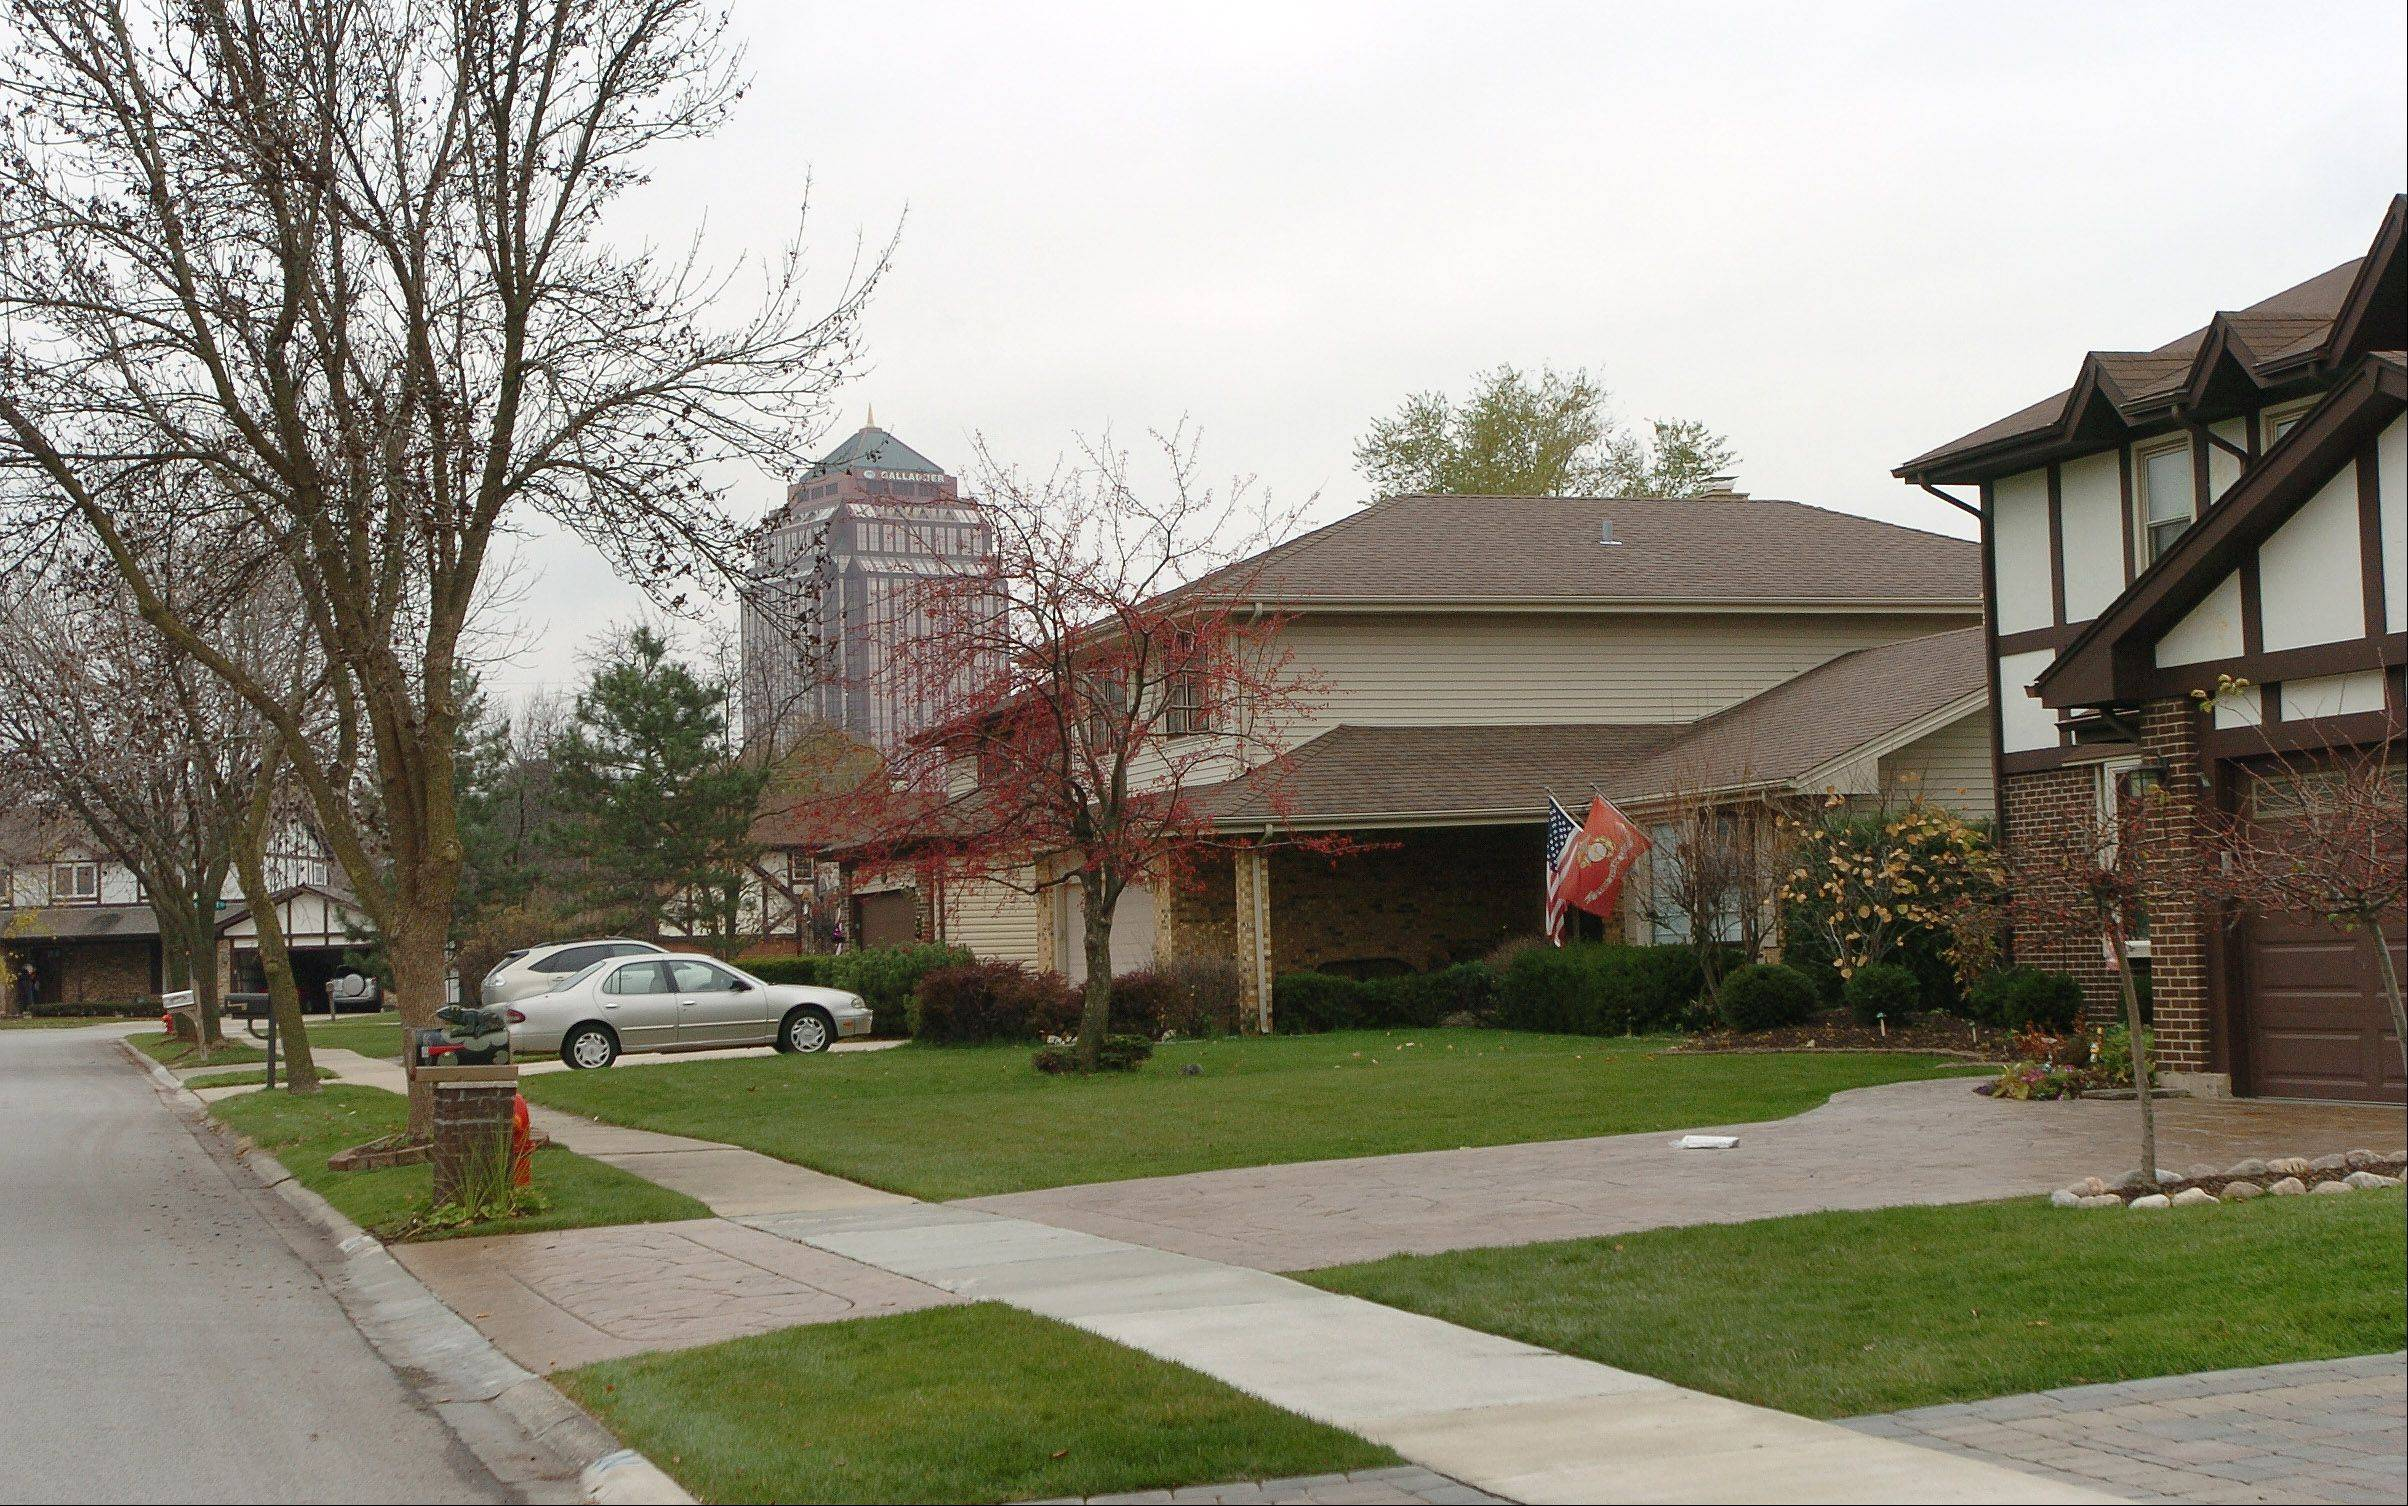 Residents of Circle Bay Estates are within walking distance of much Elk Grove Village has to offer.